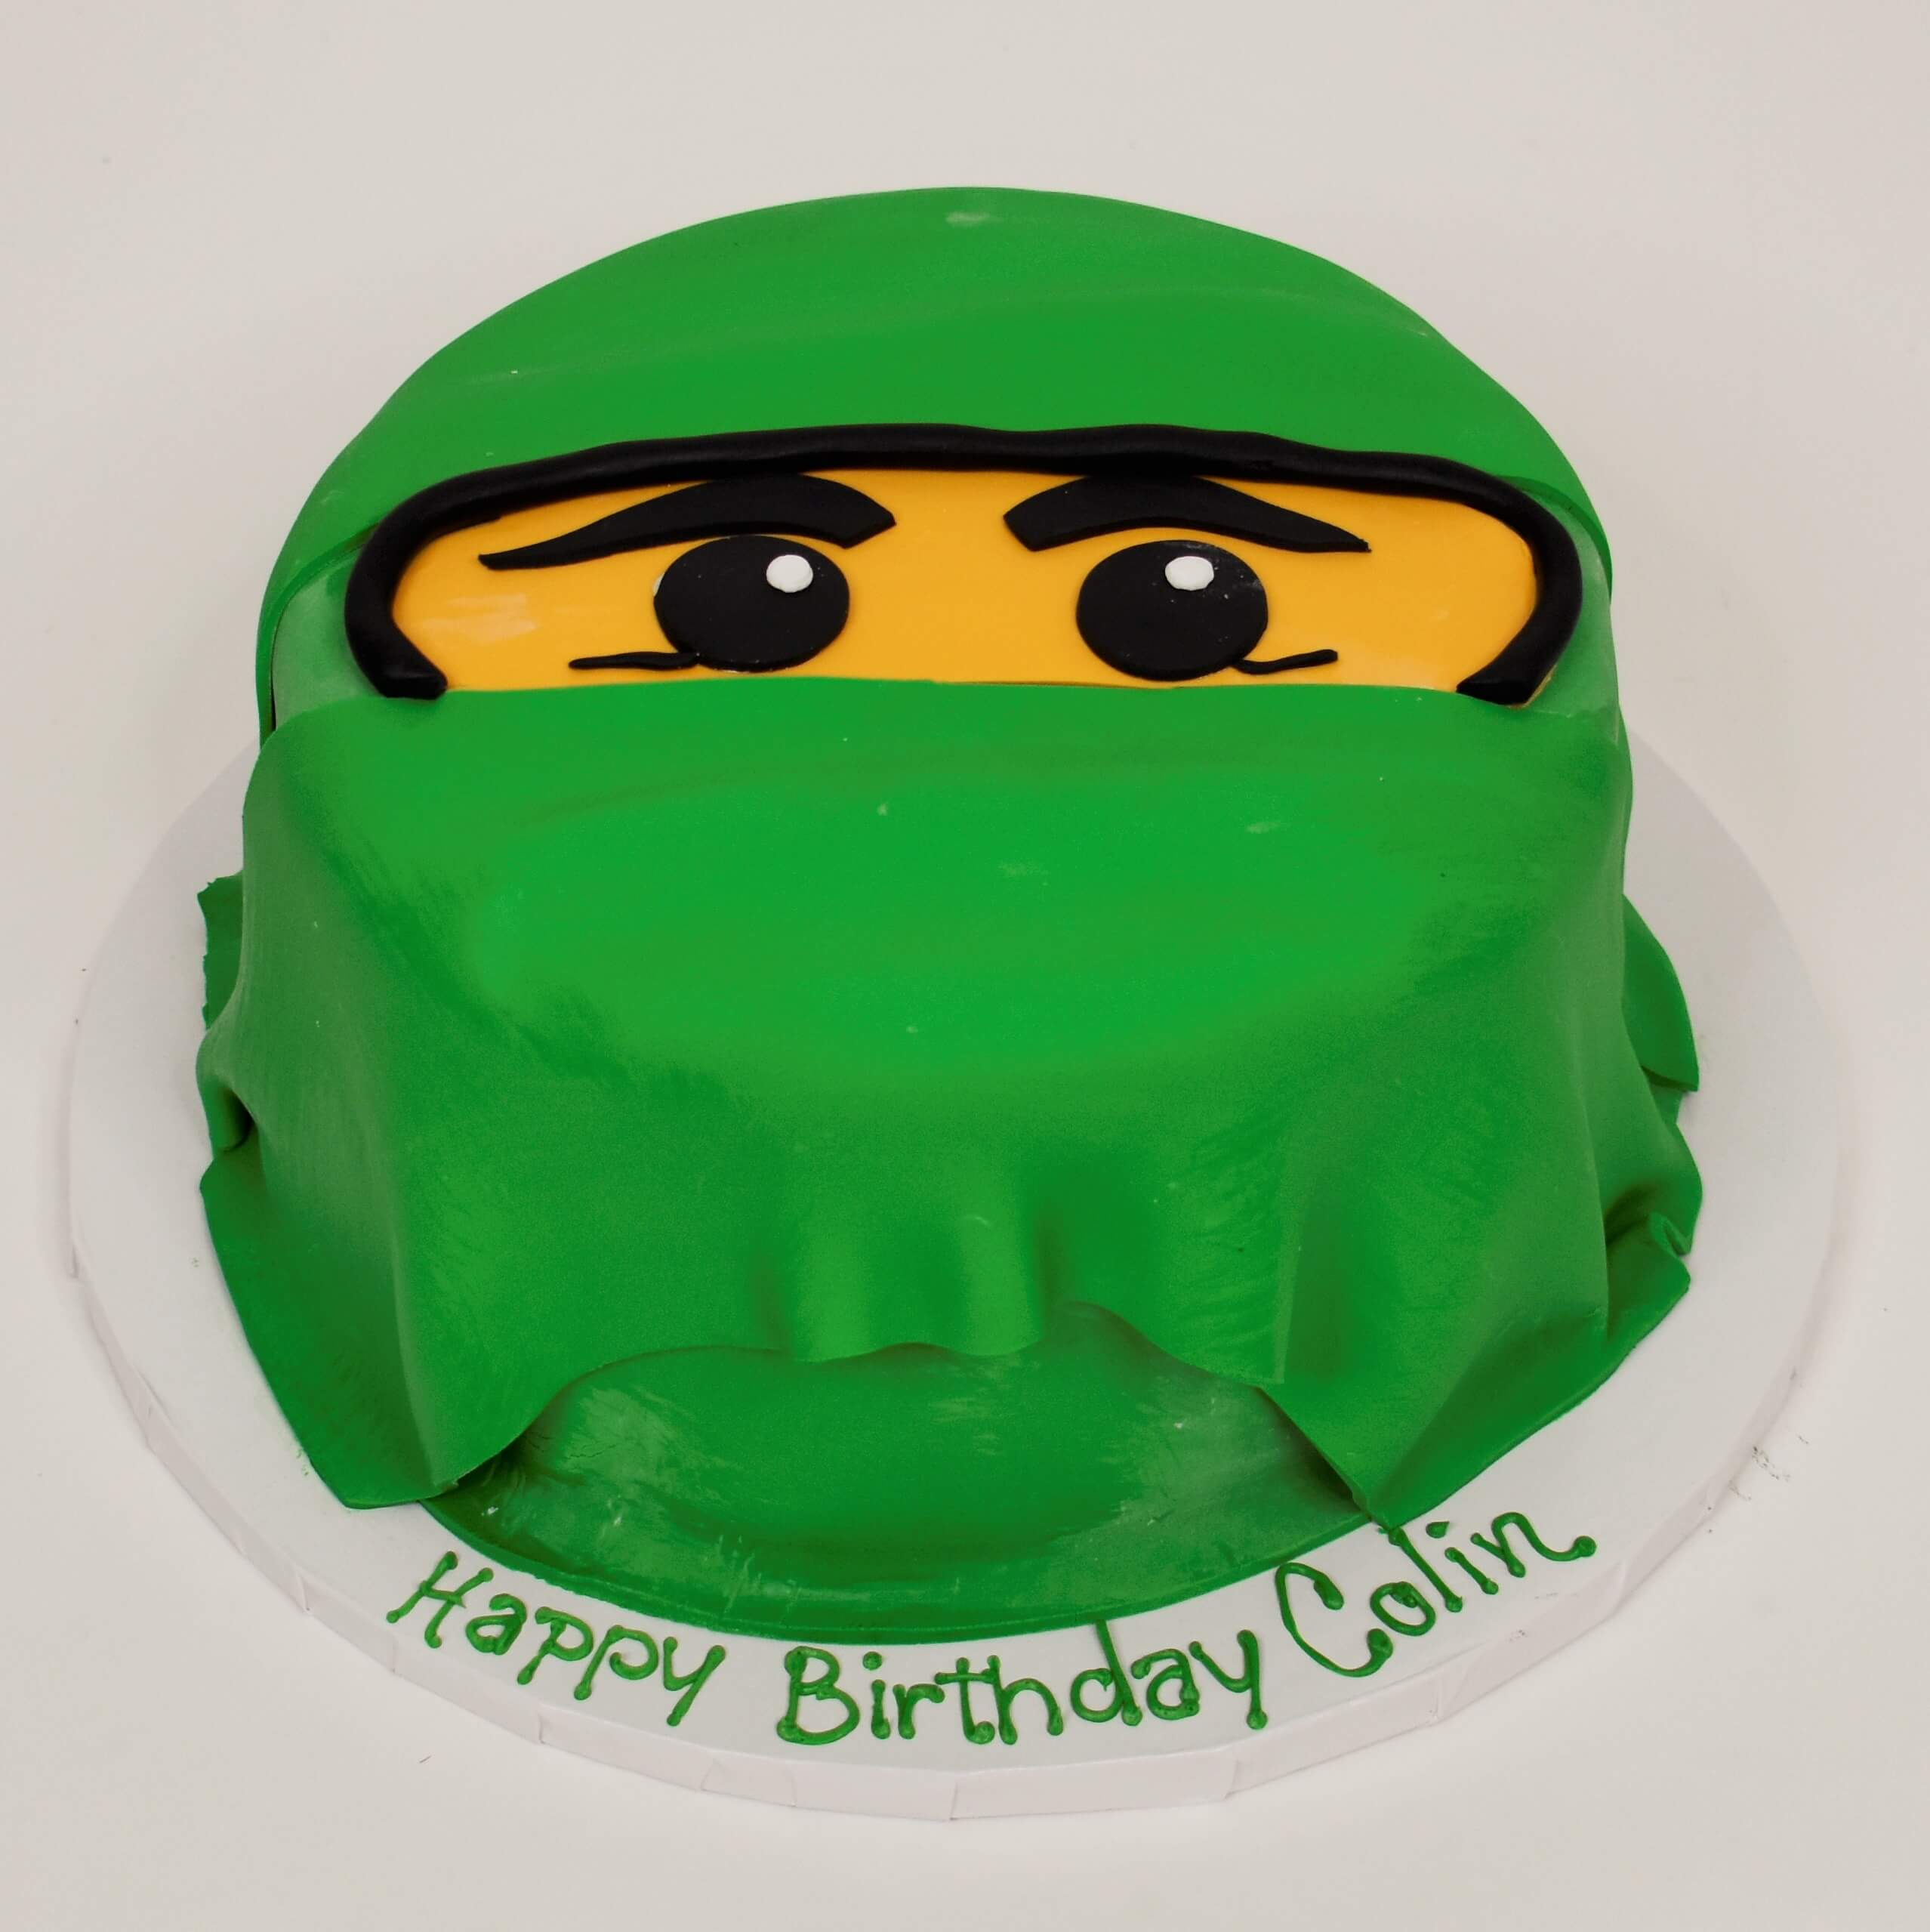 McArthur's Bakery Custom Cake with Yellow Face, Green Overlay